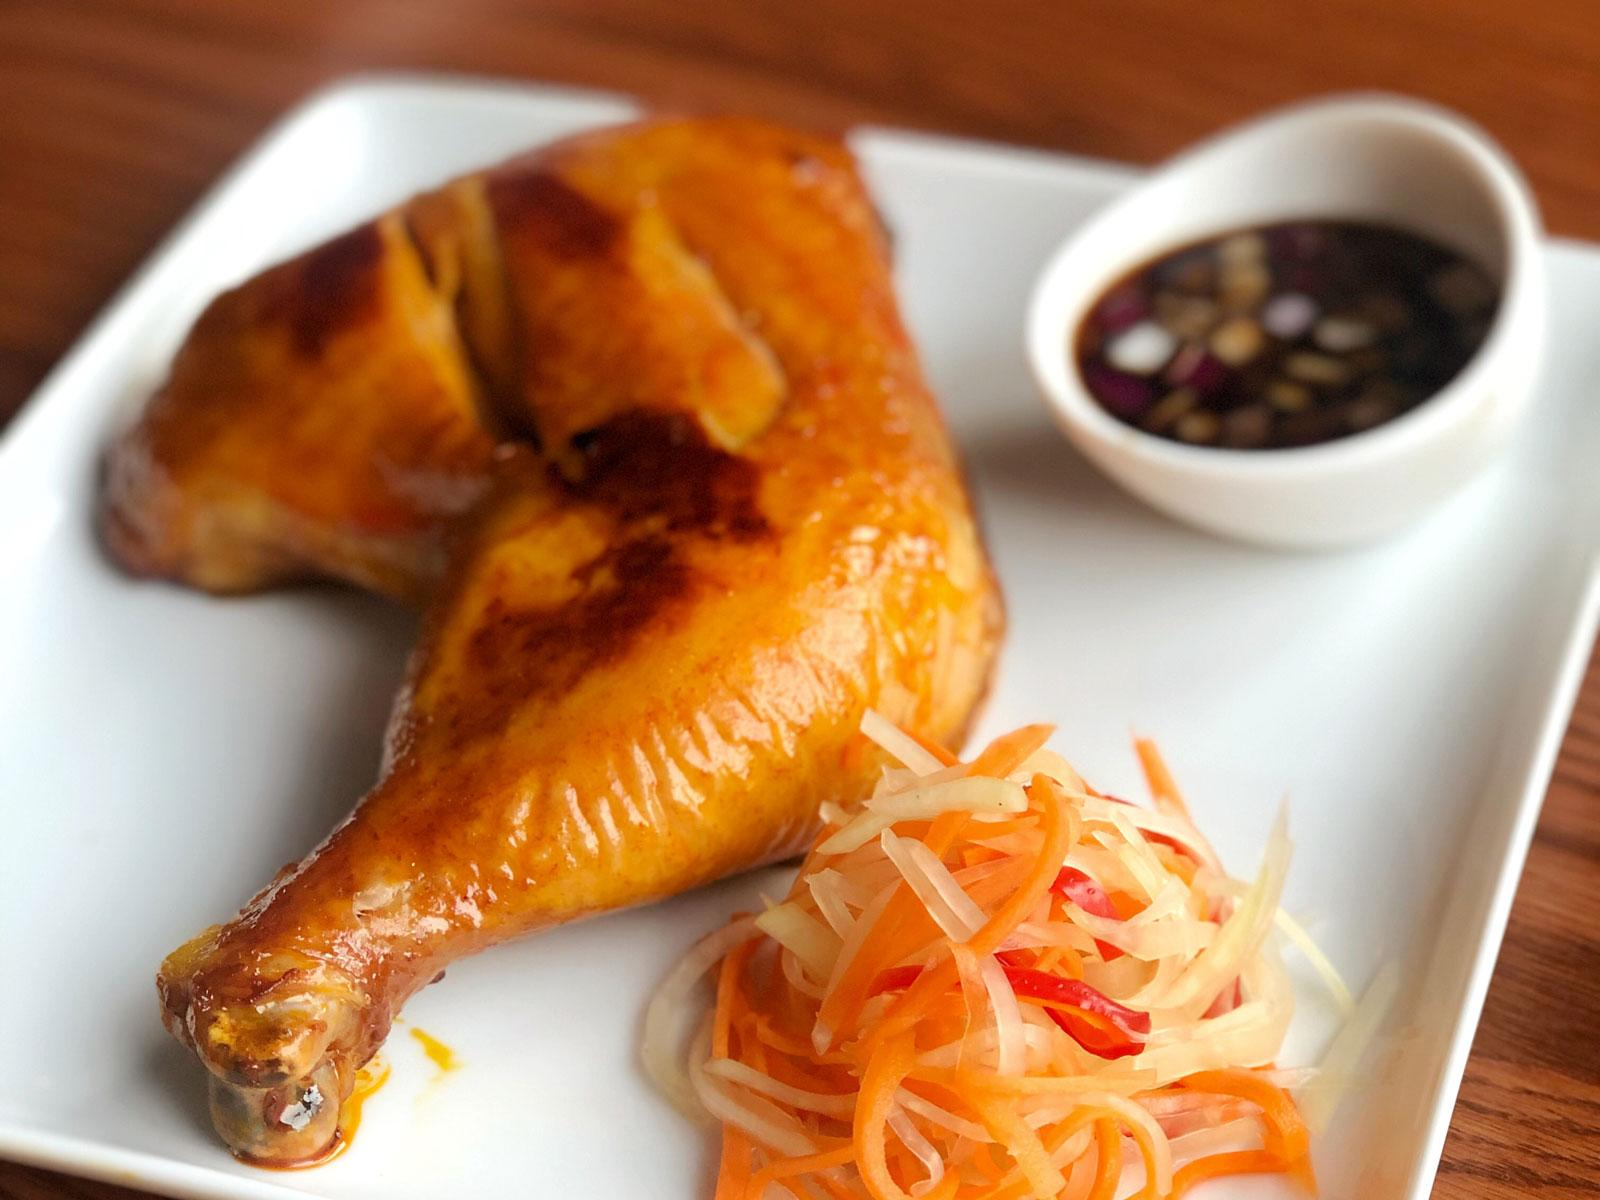 Cebu Debuts In Chicago With Regional Filipino Cuisine And